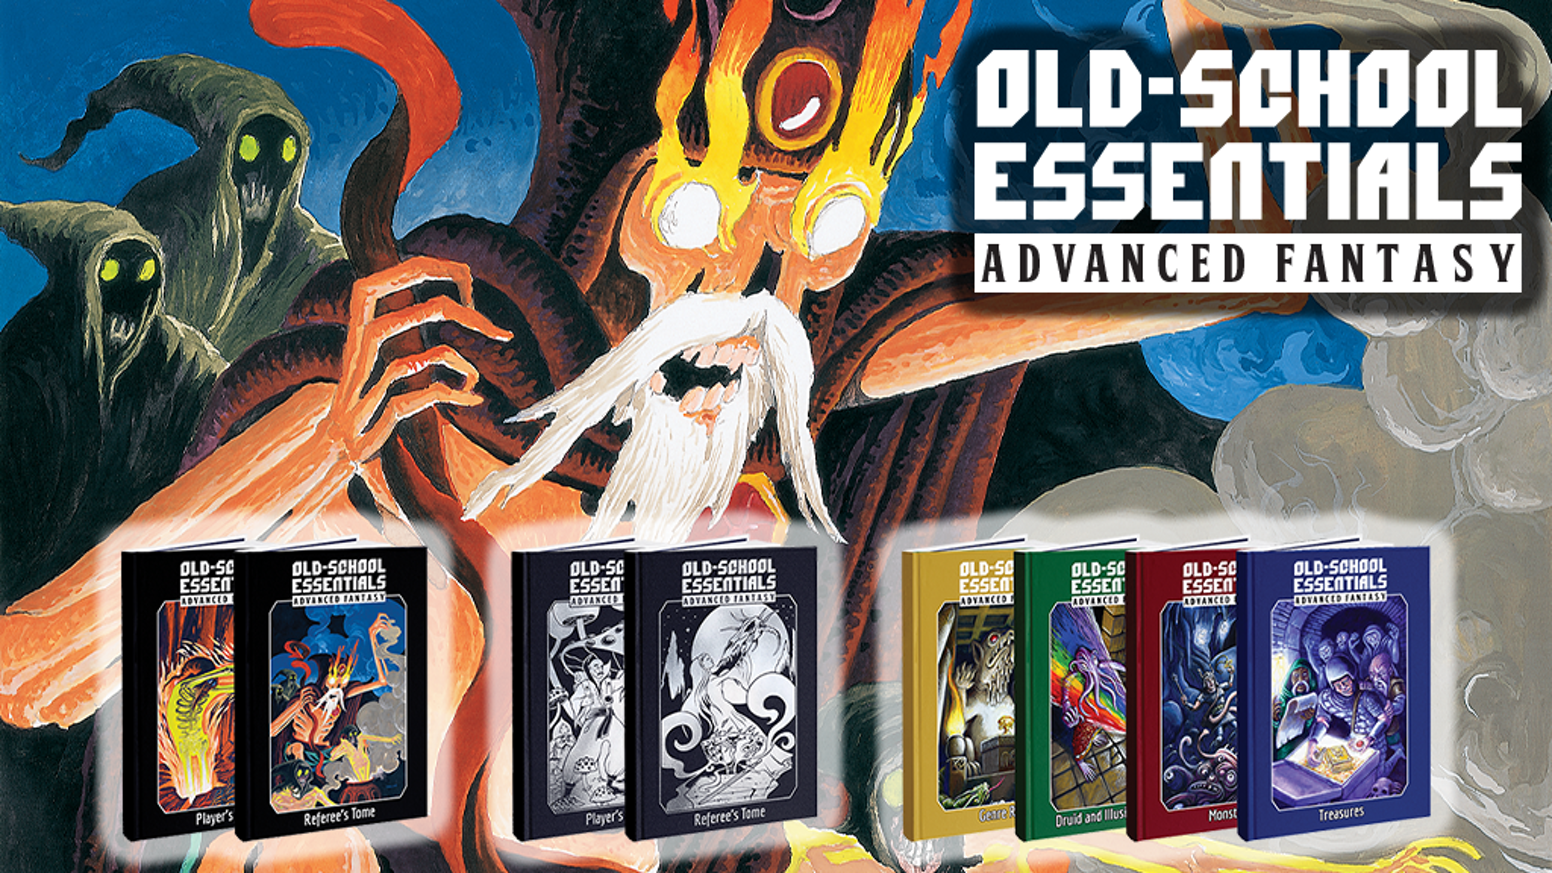 The essential old-school fantasy RPG, now expanded with advanced character options, magic, and monsters — plus 4 brand new adventures!